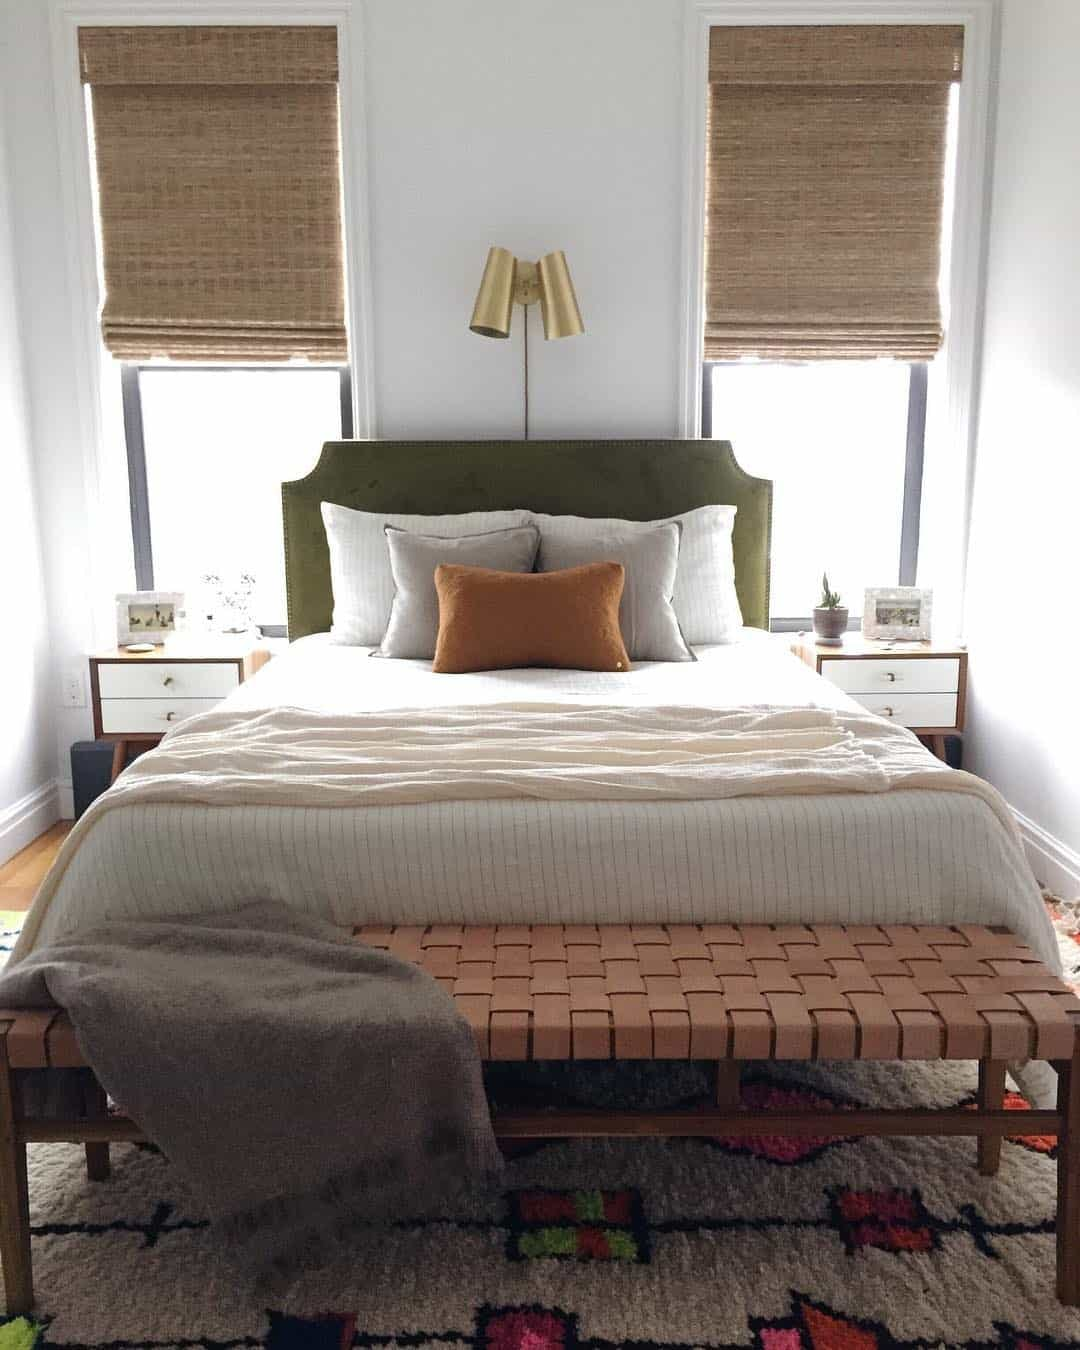 Bedroom with wood furniture, sage green, velvet headboard and woven wood window shades.